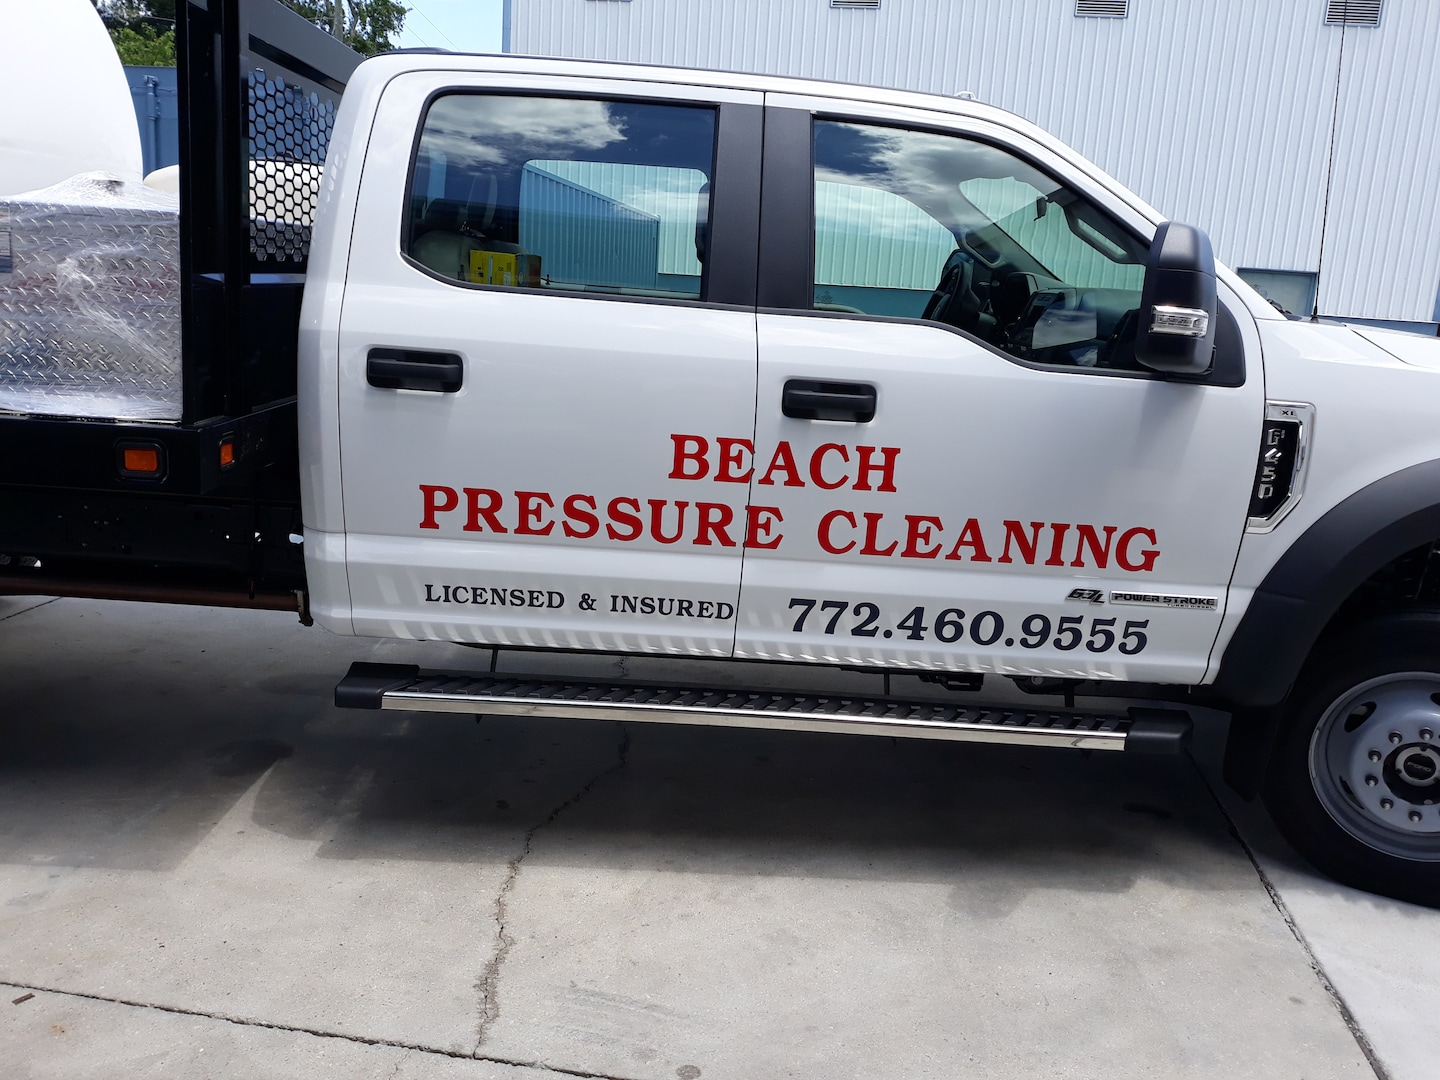 Beach Pressure Cleaning